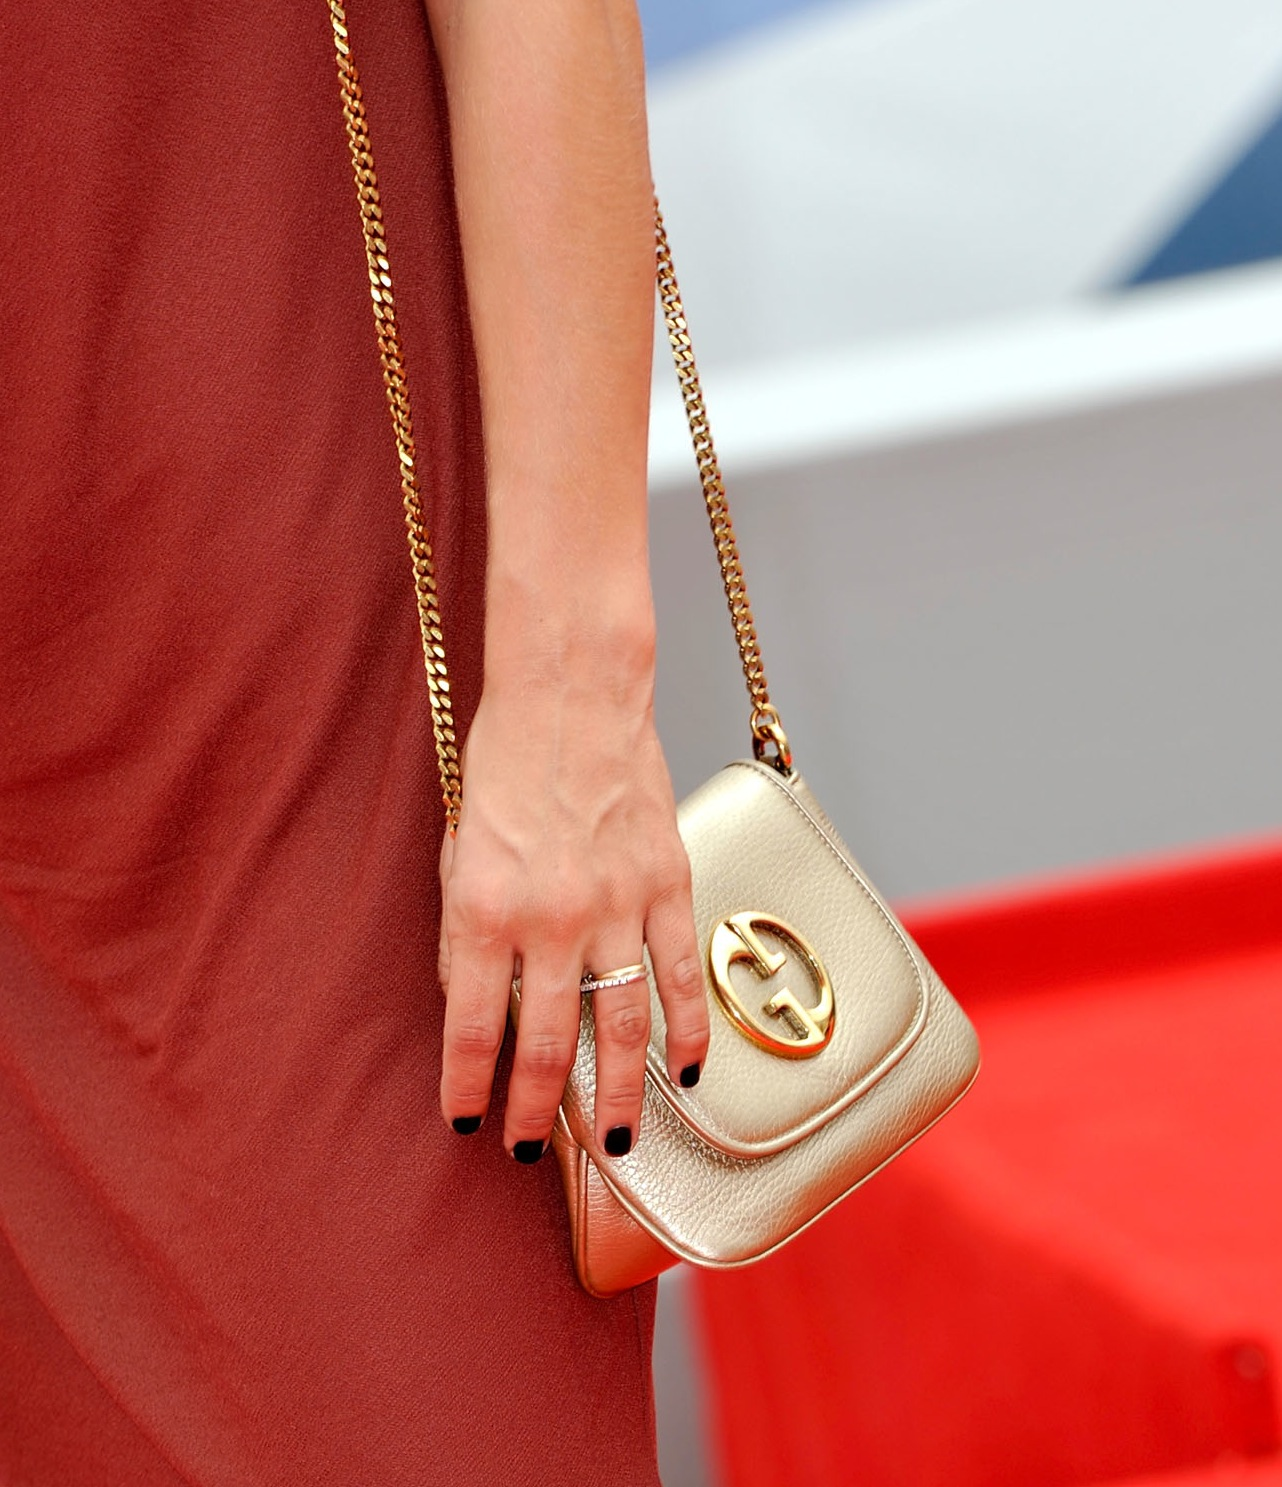 Gucci Gold Chain Her Gold Chain-strap Gucci Bag